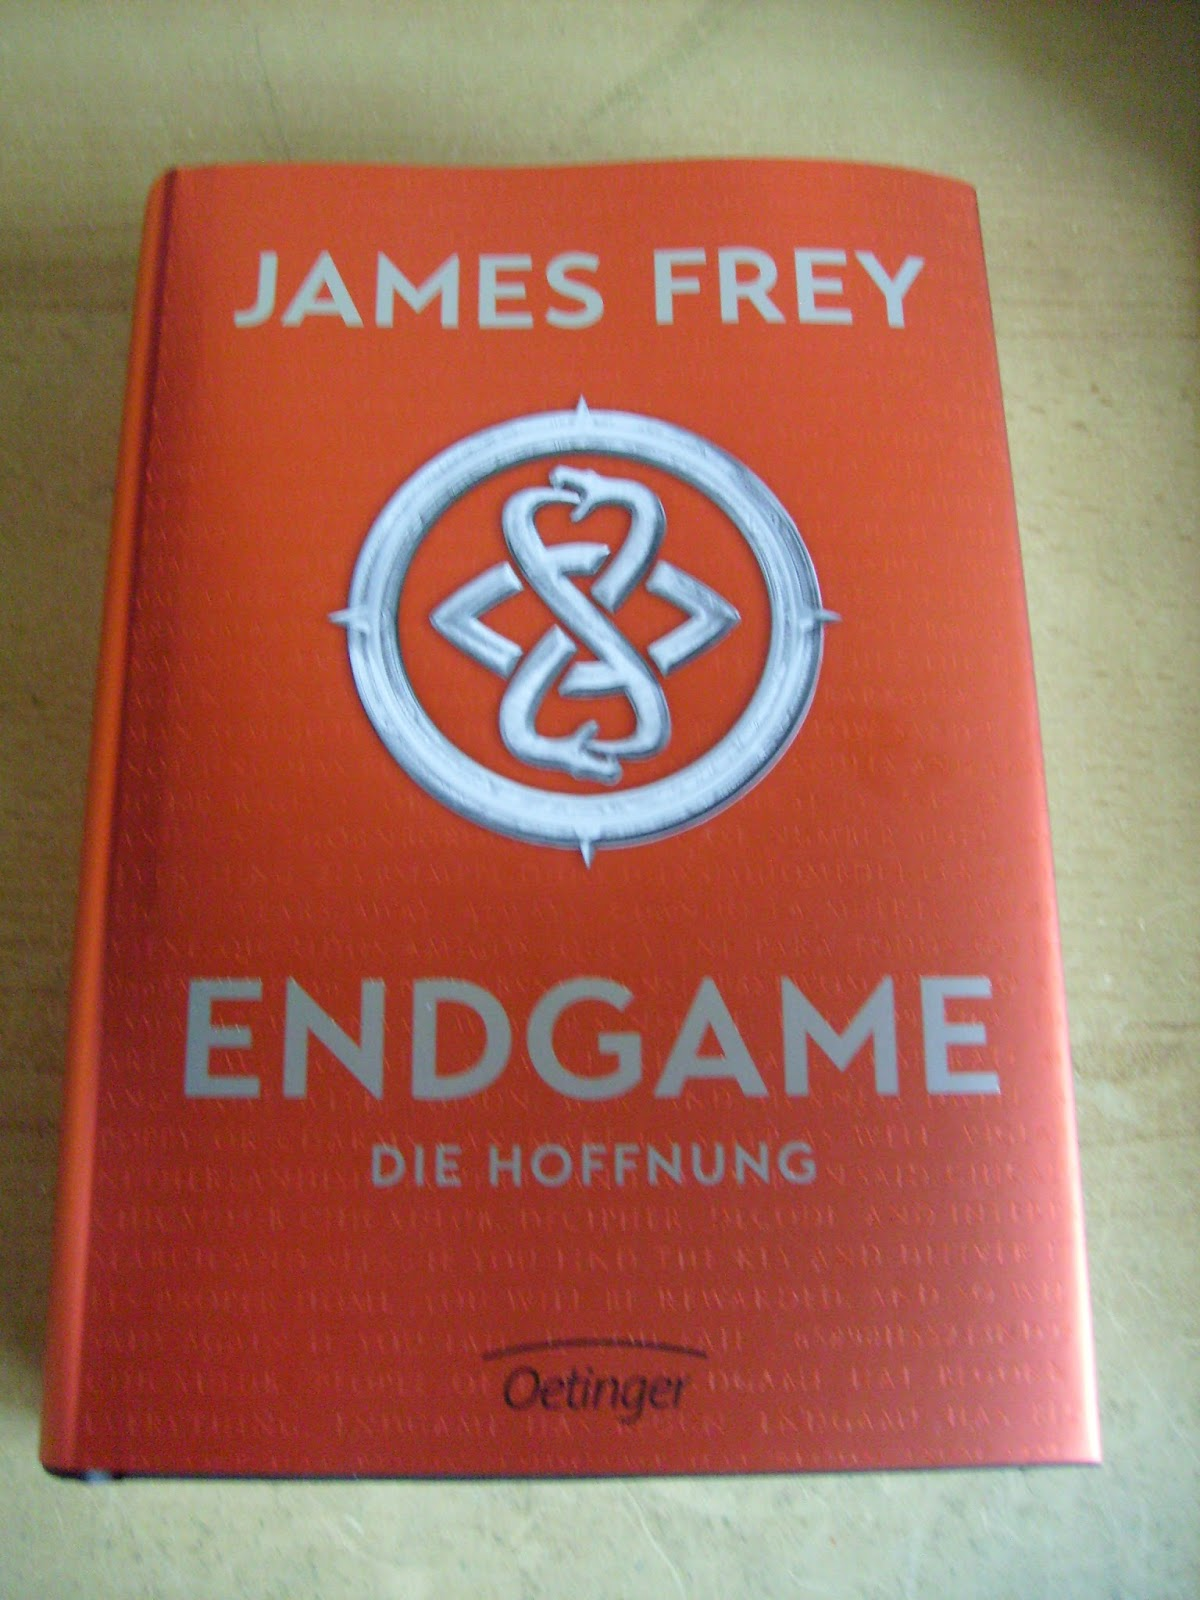 http://www.amazon.de/Endgame-Die-Hoffnung-Band-2/dp/3789135240/ref=sr_1_1?s=books&ie=UTF8&qid=1444906718&sr=1-1&keywords=endgame+die+hoffnung